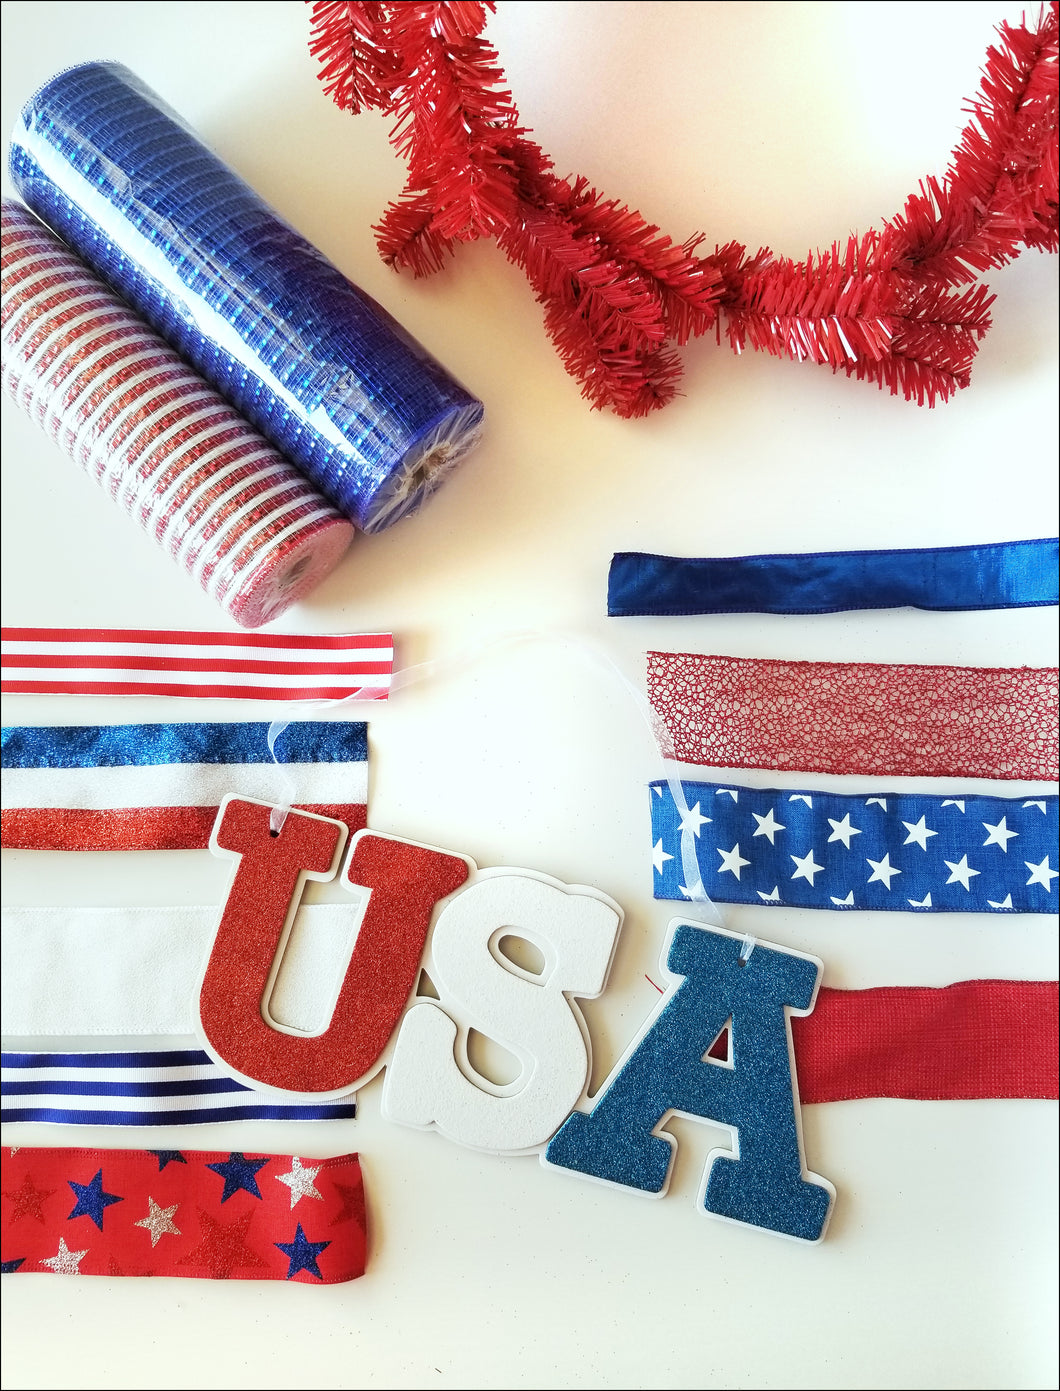 USA Patriotic DIY Wreath Kit - Designer DIY